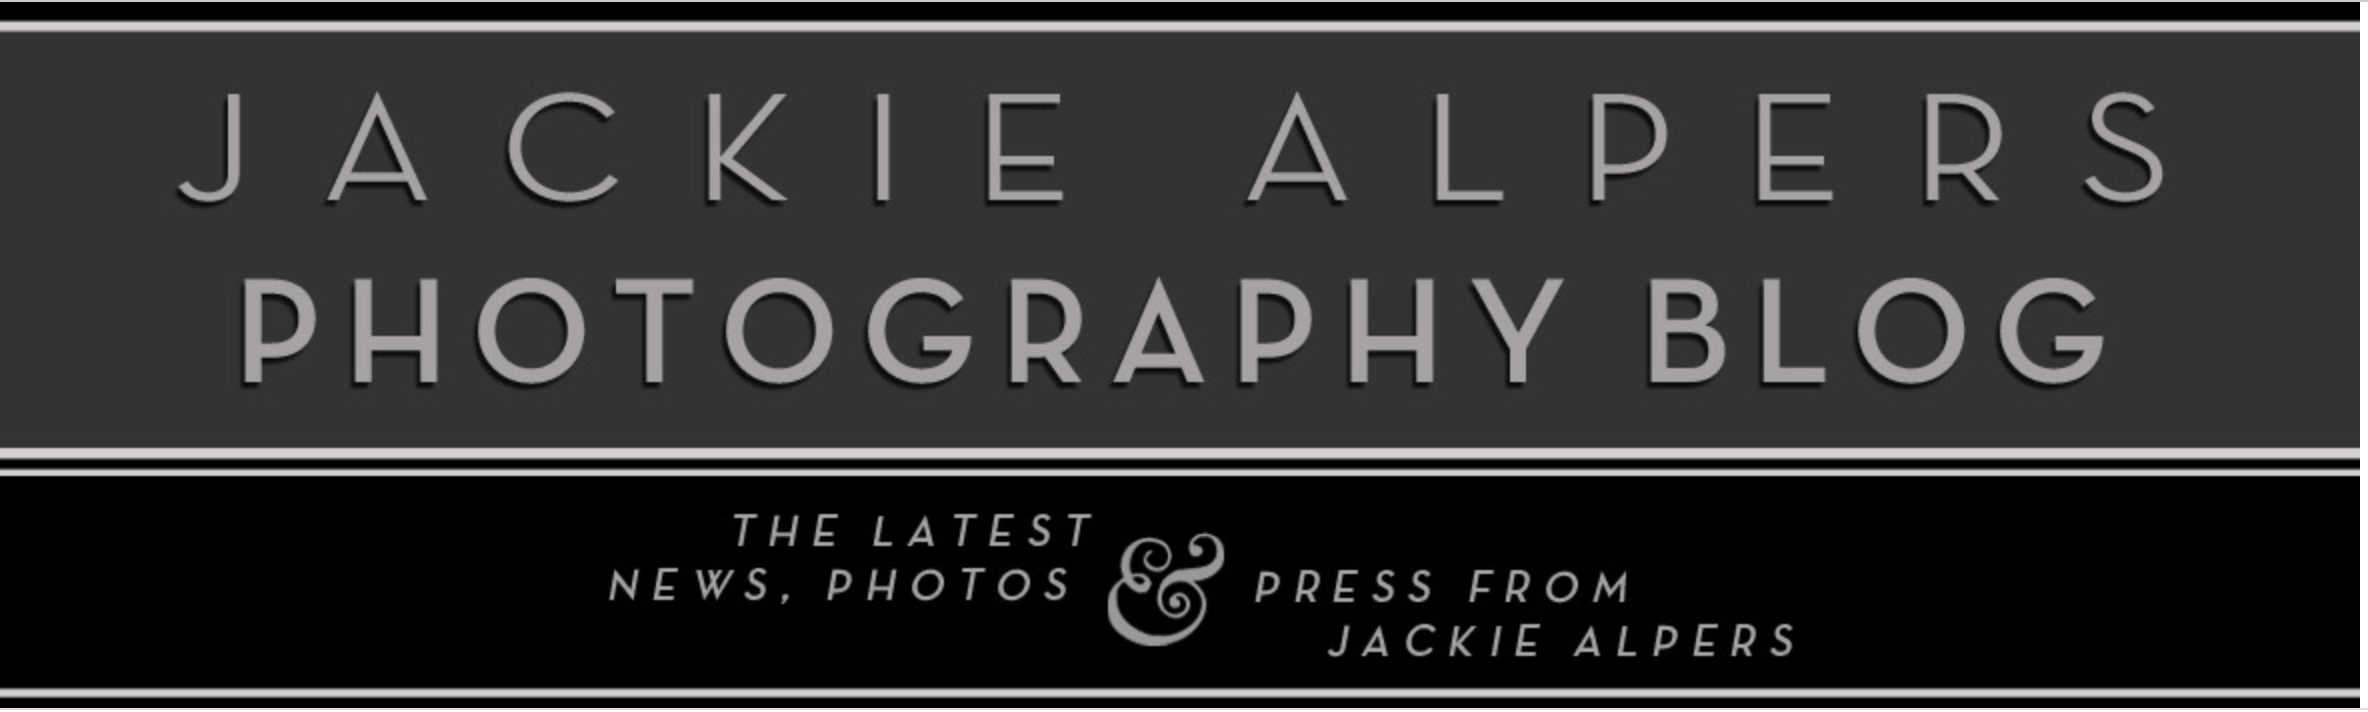 Jackie Alpers | Food Photographer & Cookbook Author | News, Photos & Press